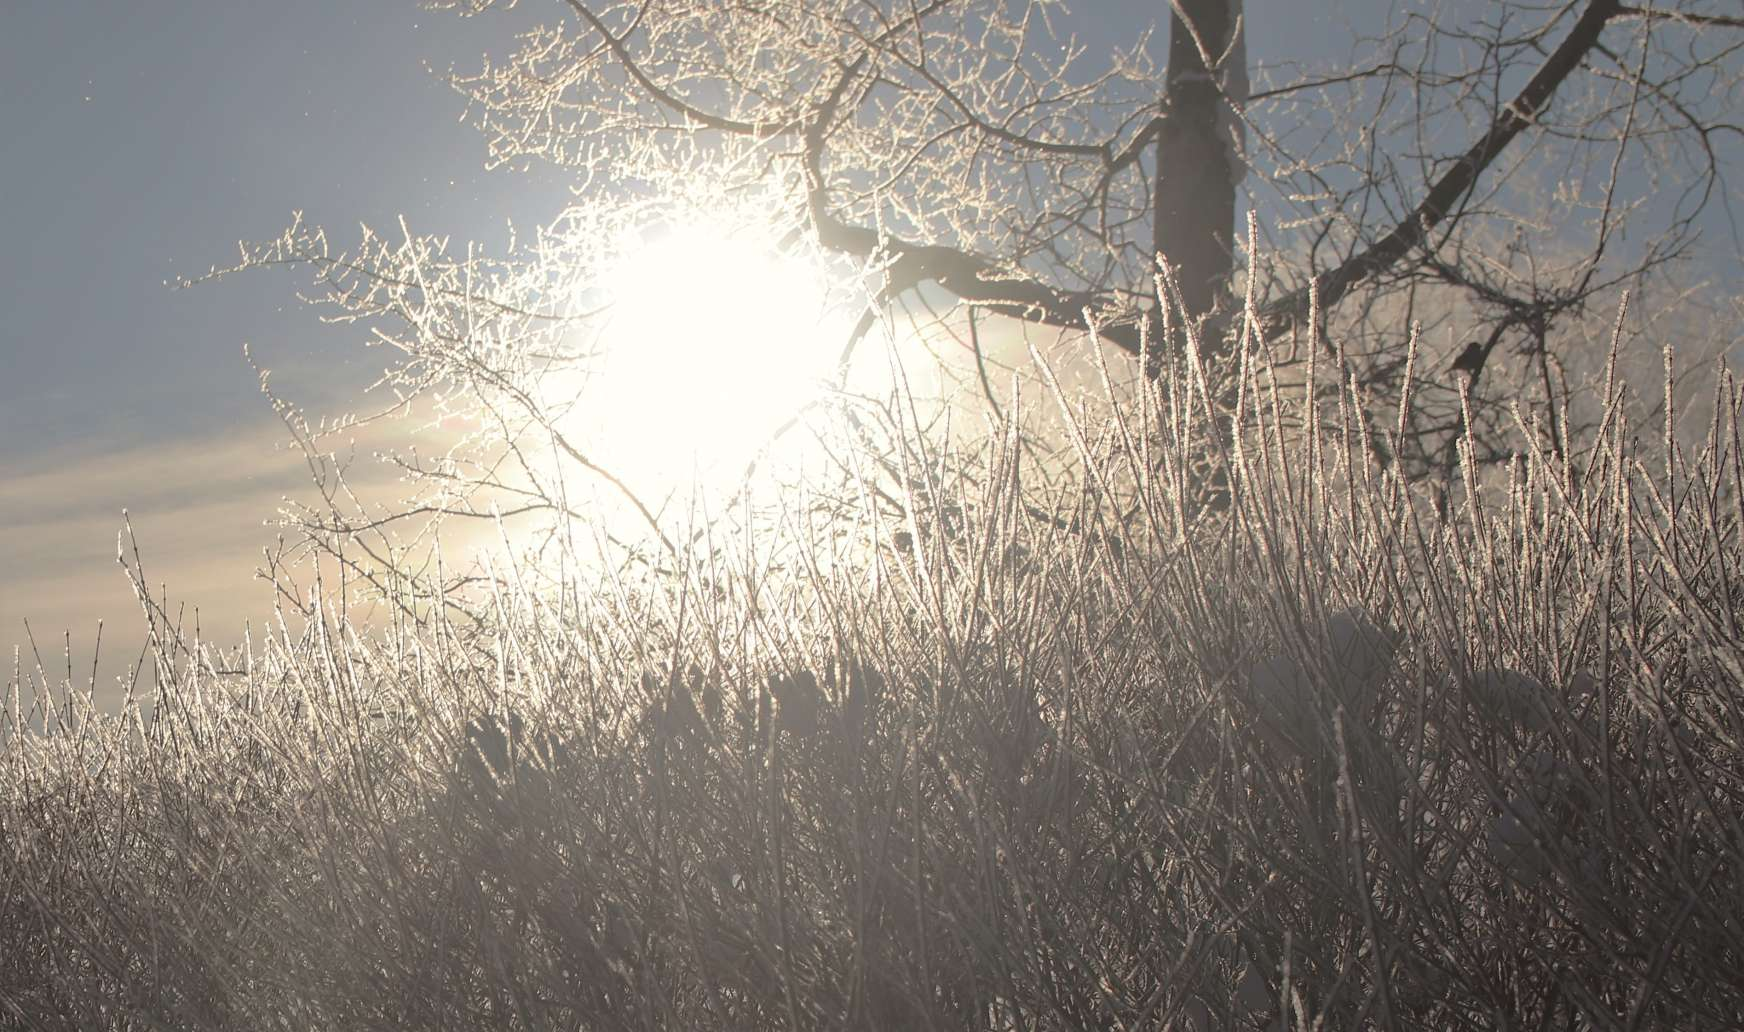 Hoar Frost. Frosty morning on February 11, 2021. Can you spot the bird singing in the tree?